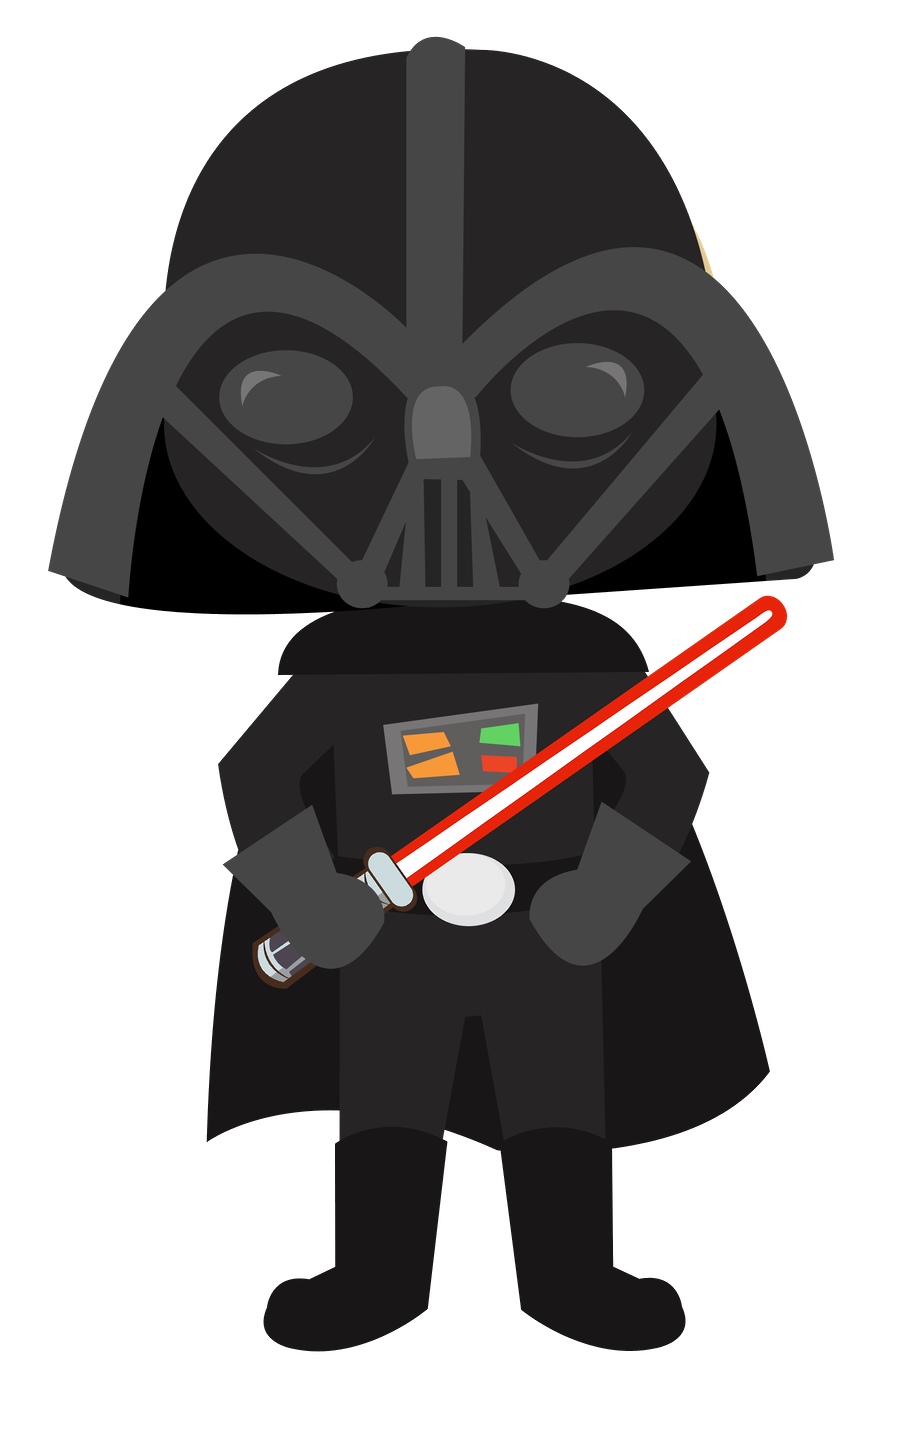 Darth vader clipart clip arts for free download on png